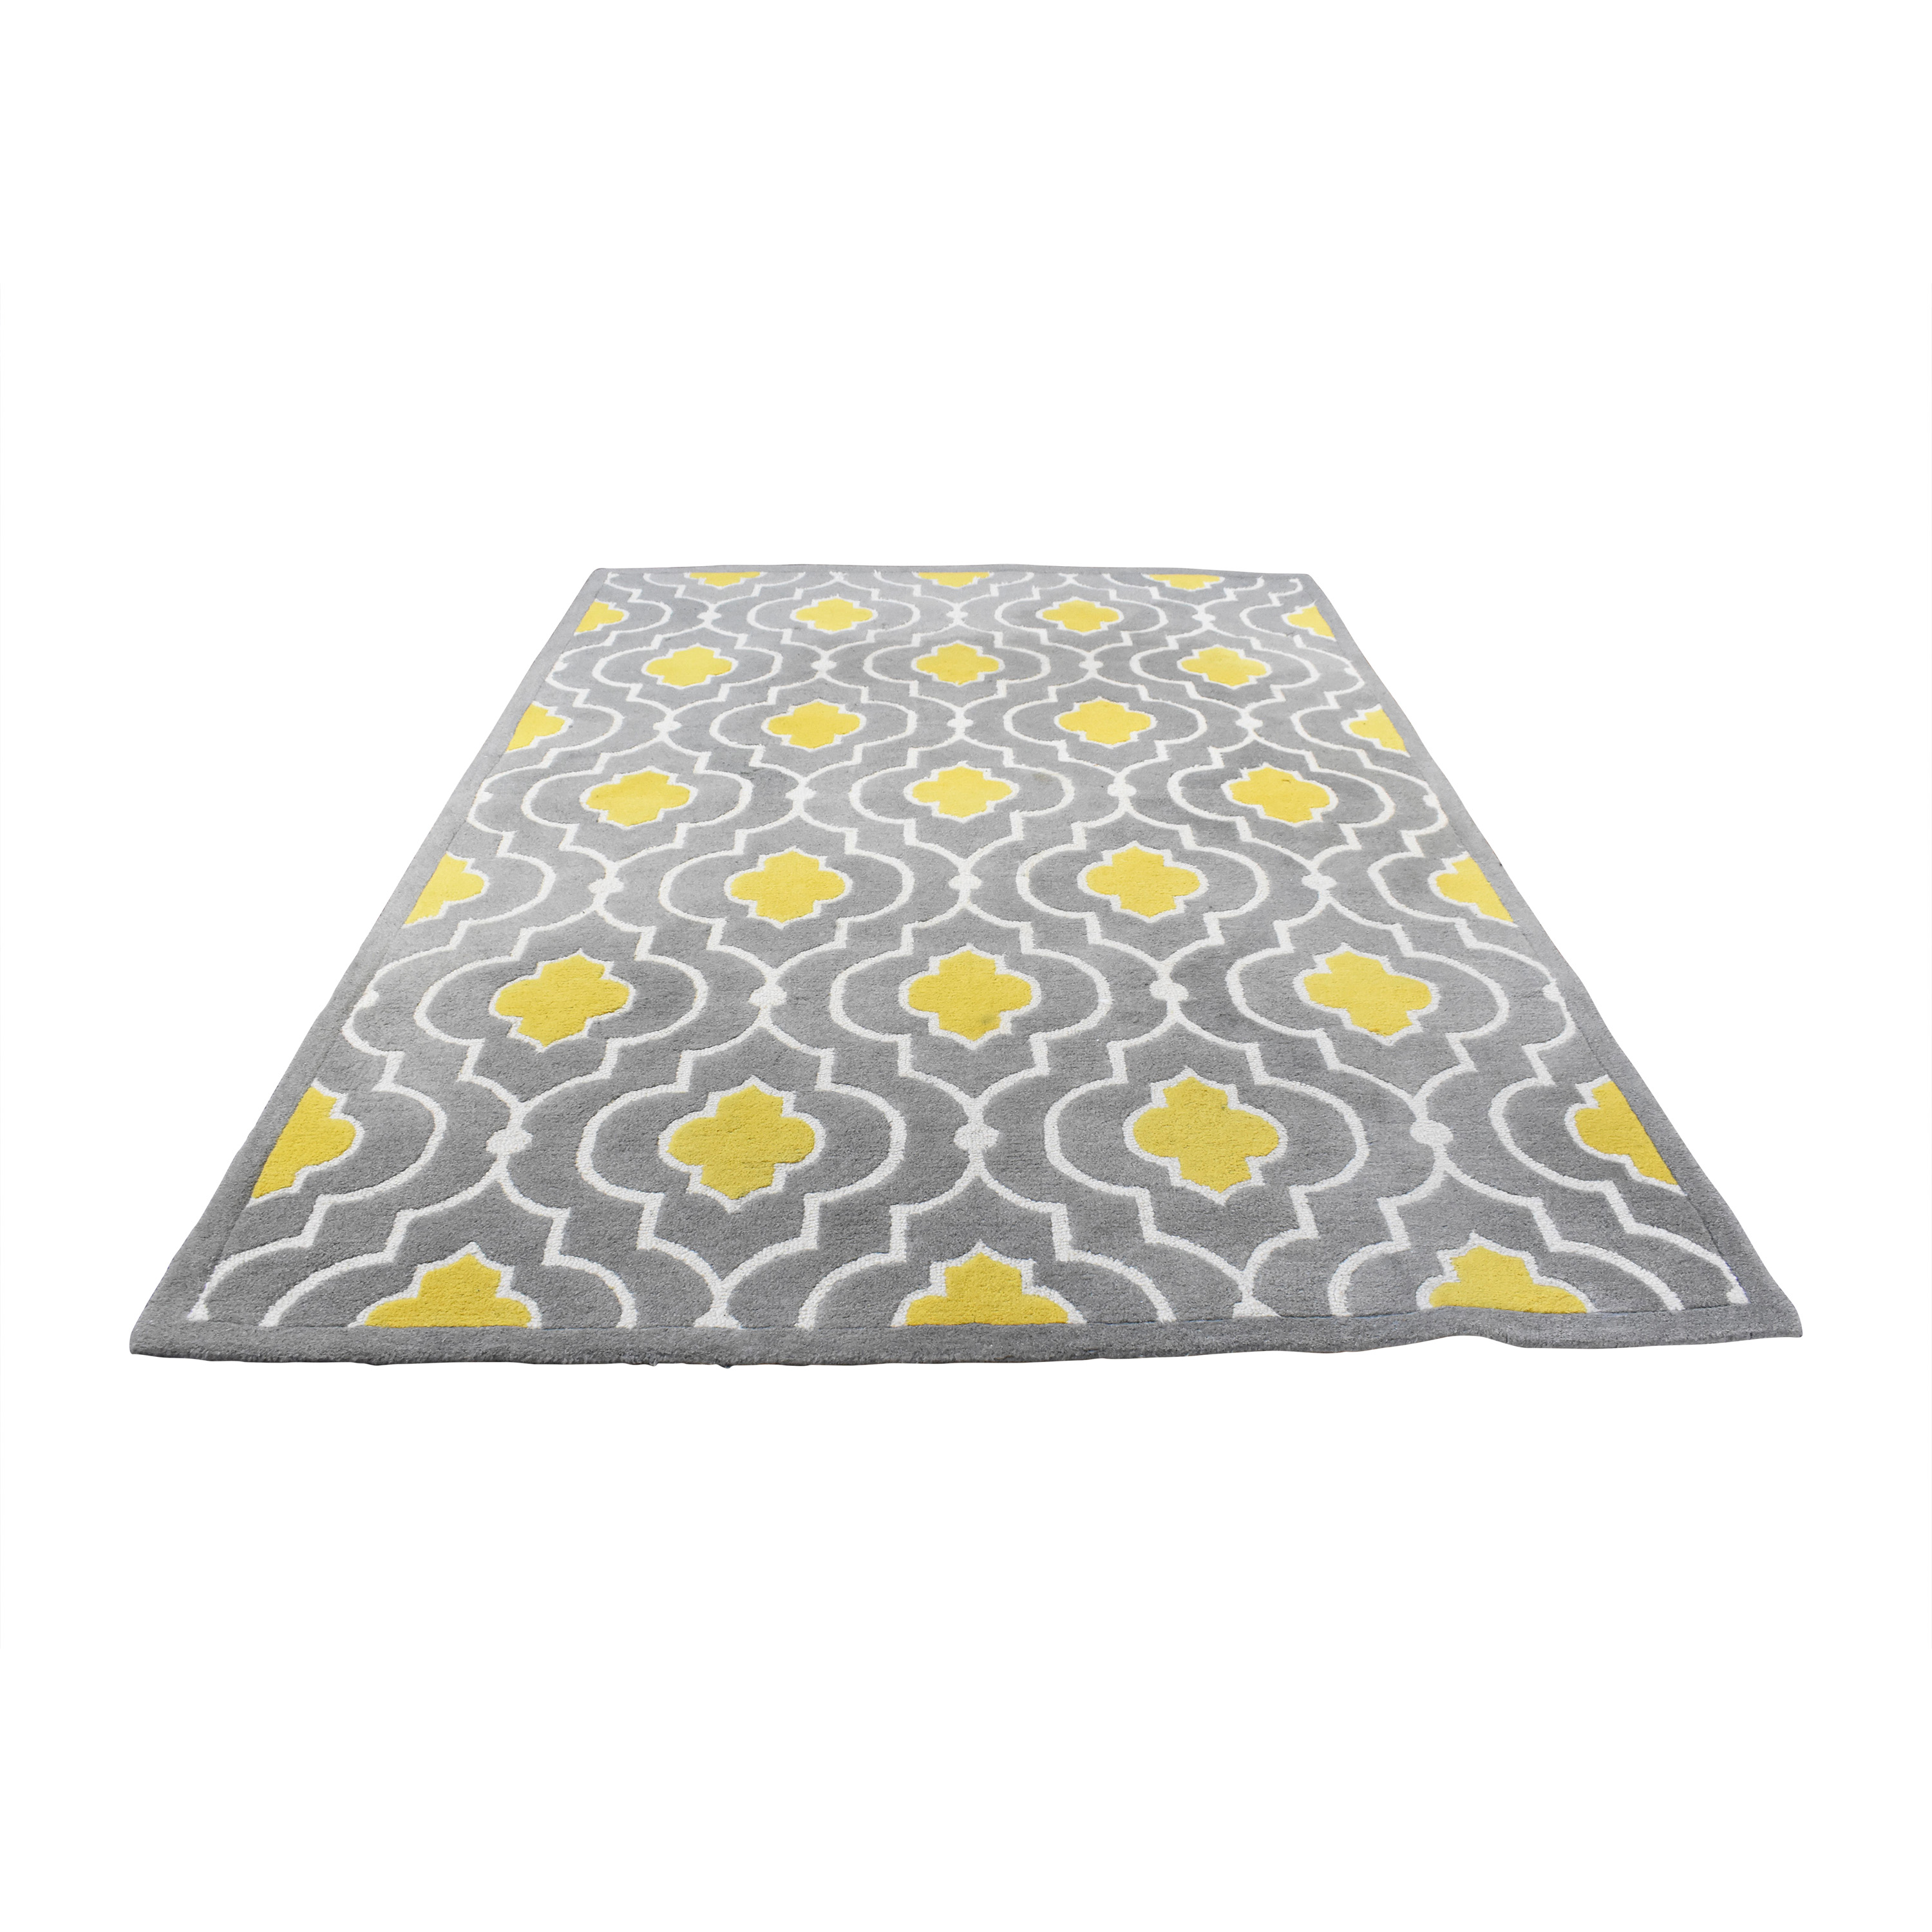 Loloi Loloi Brighton Arabesque Area Rug used